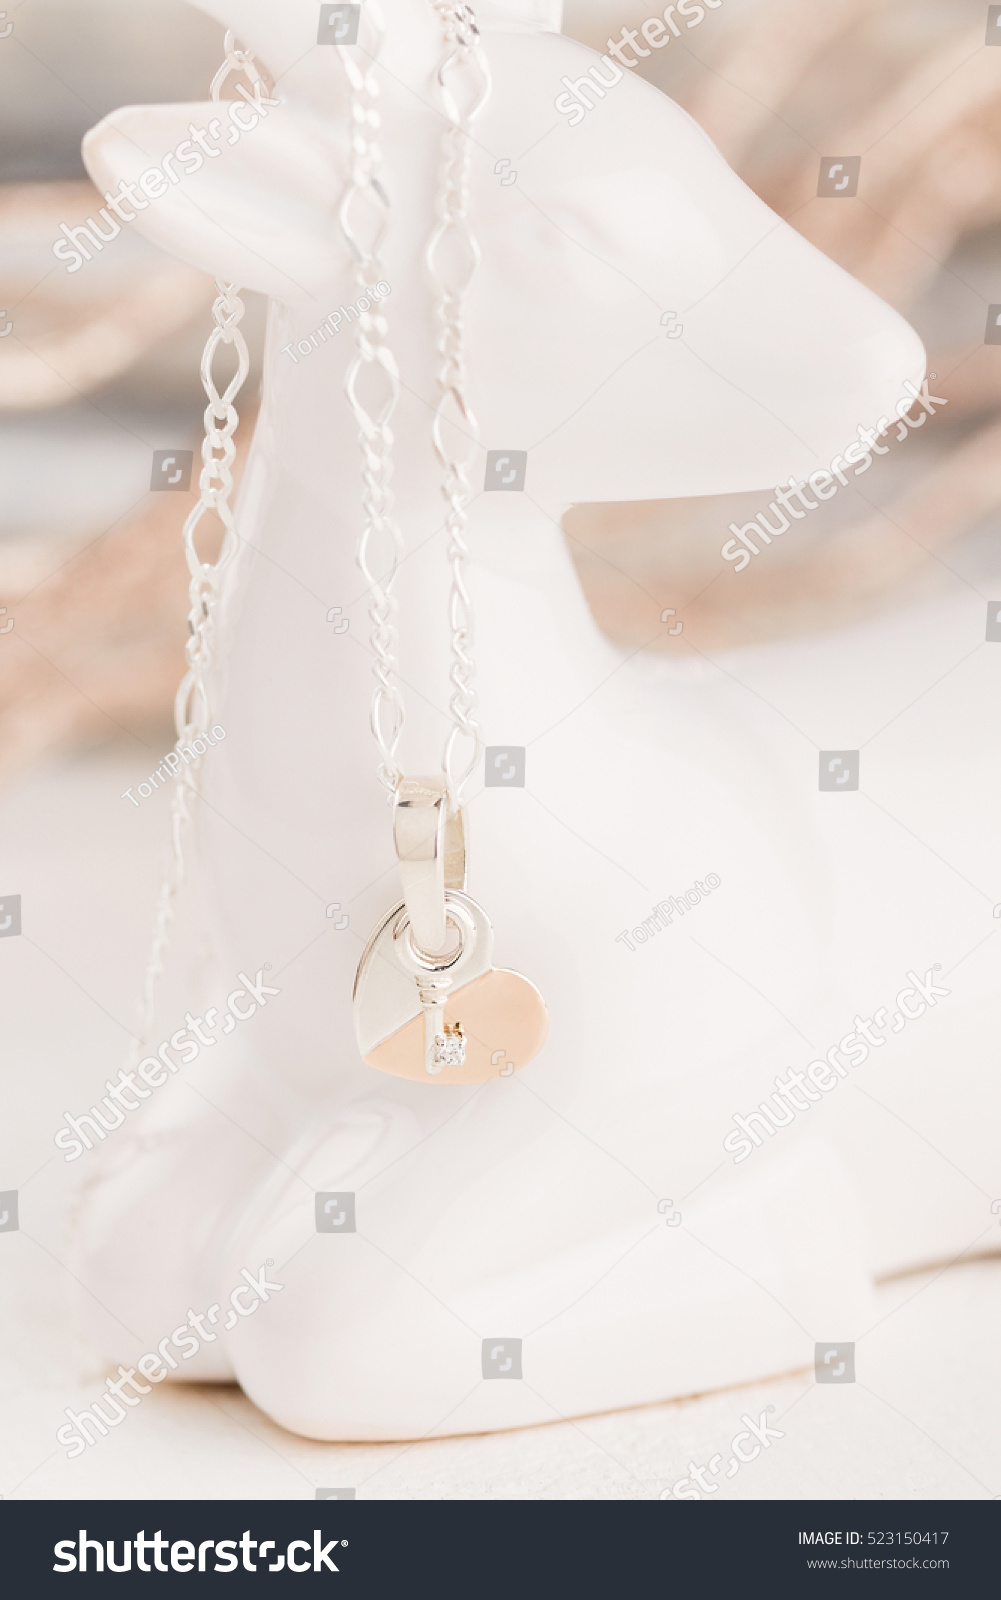 https://www.shutterstock.com/pic-523150417/stock-photo-silver-and-gold-heart-shaped-with-key-pendant-necklace.html